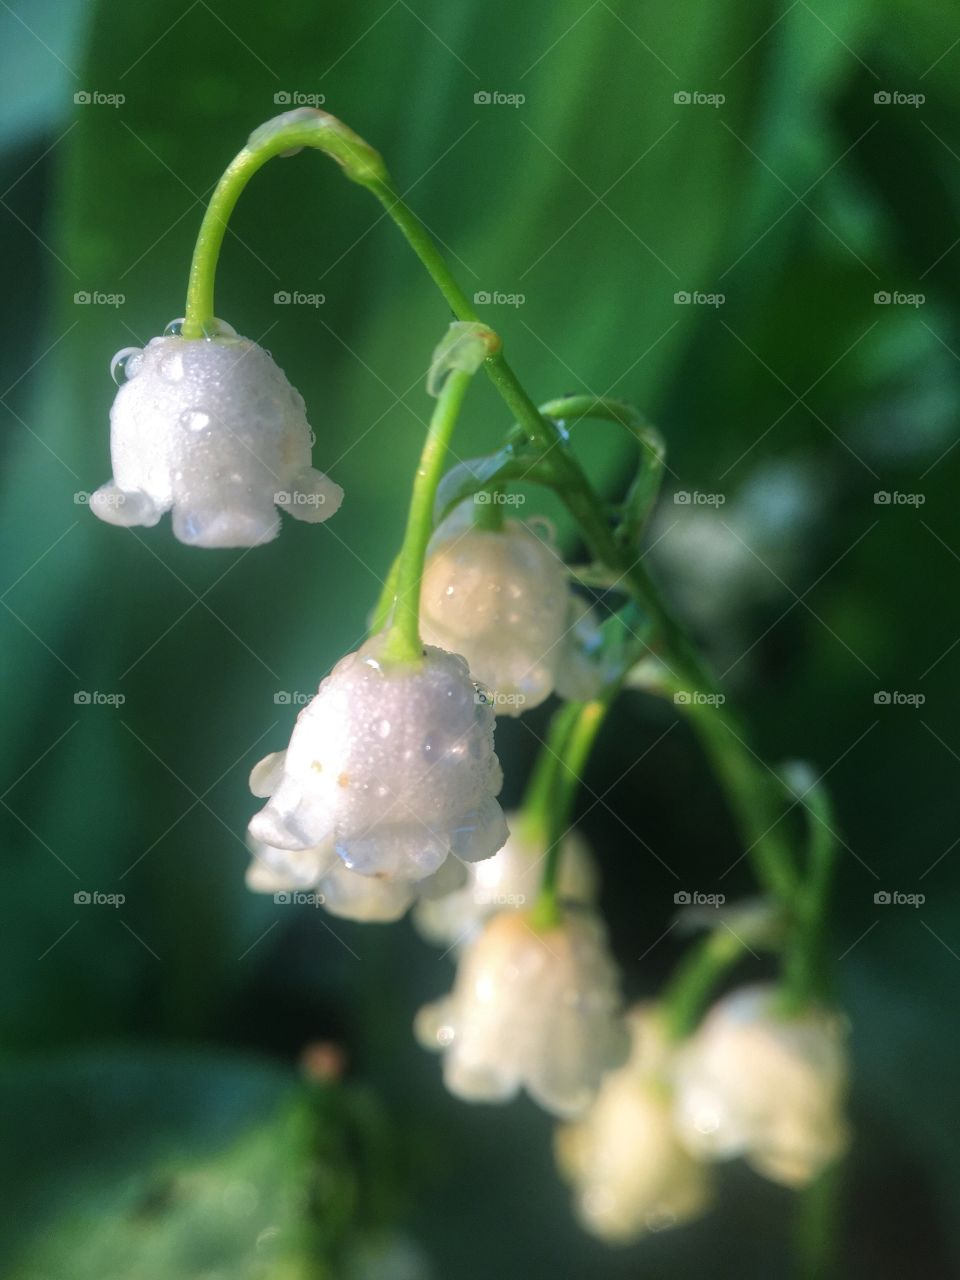 White Bells in the Dew